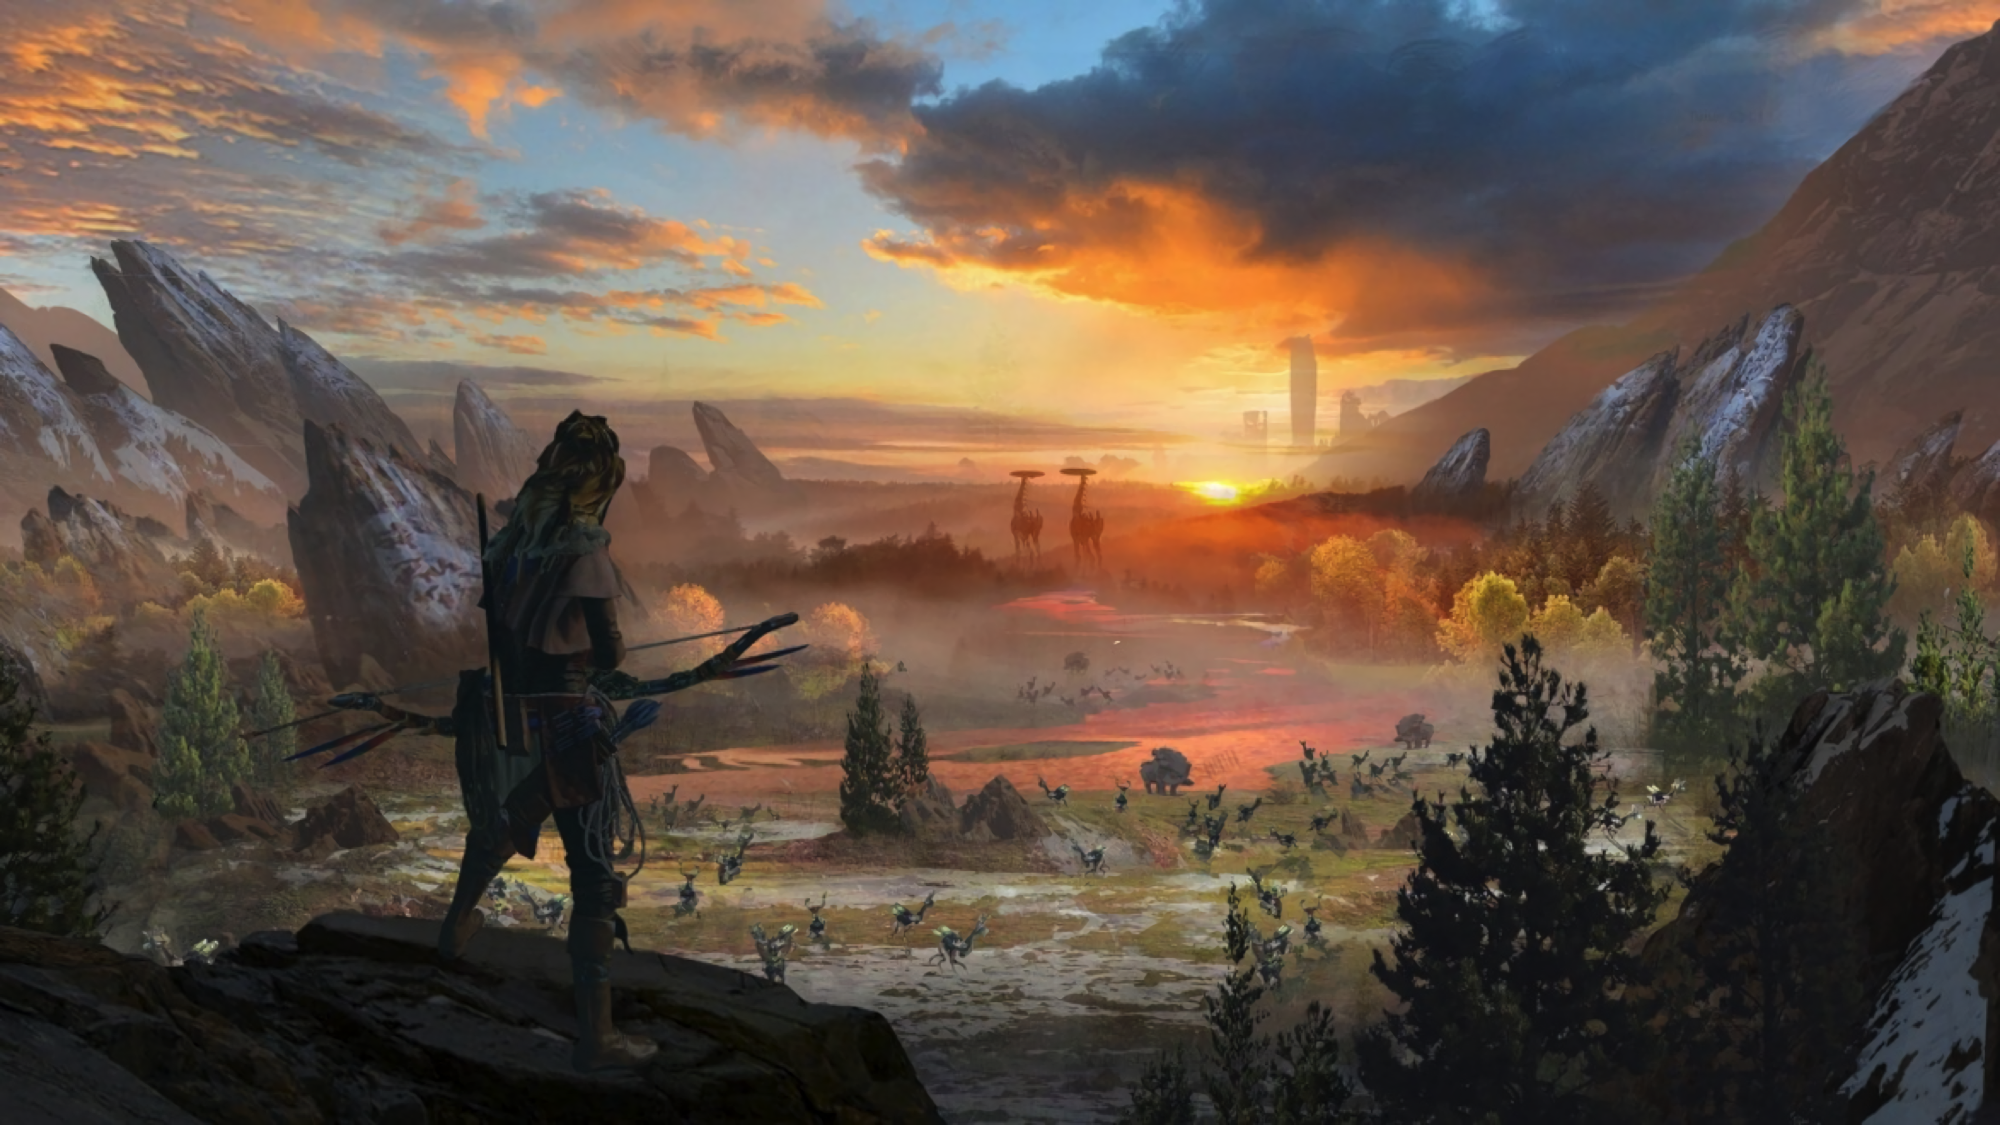 Hd Wallpaper - Horizon Zero Dawn Facebook Cover , HD Wallpaper & Backgrounds